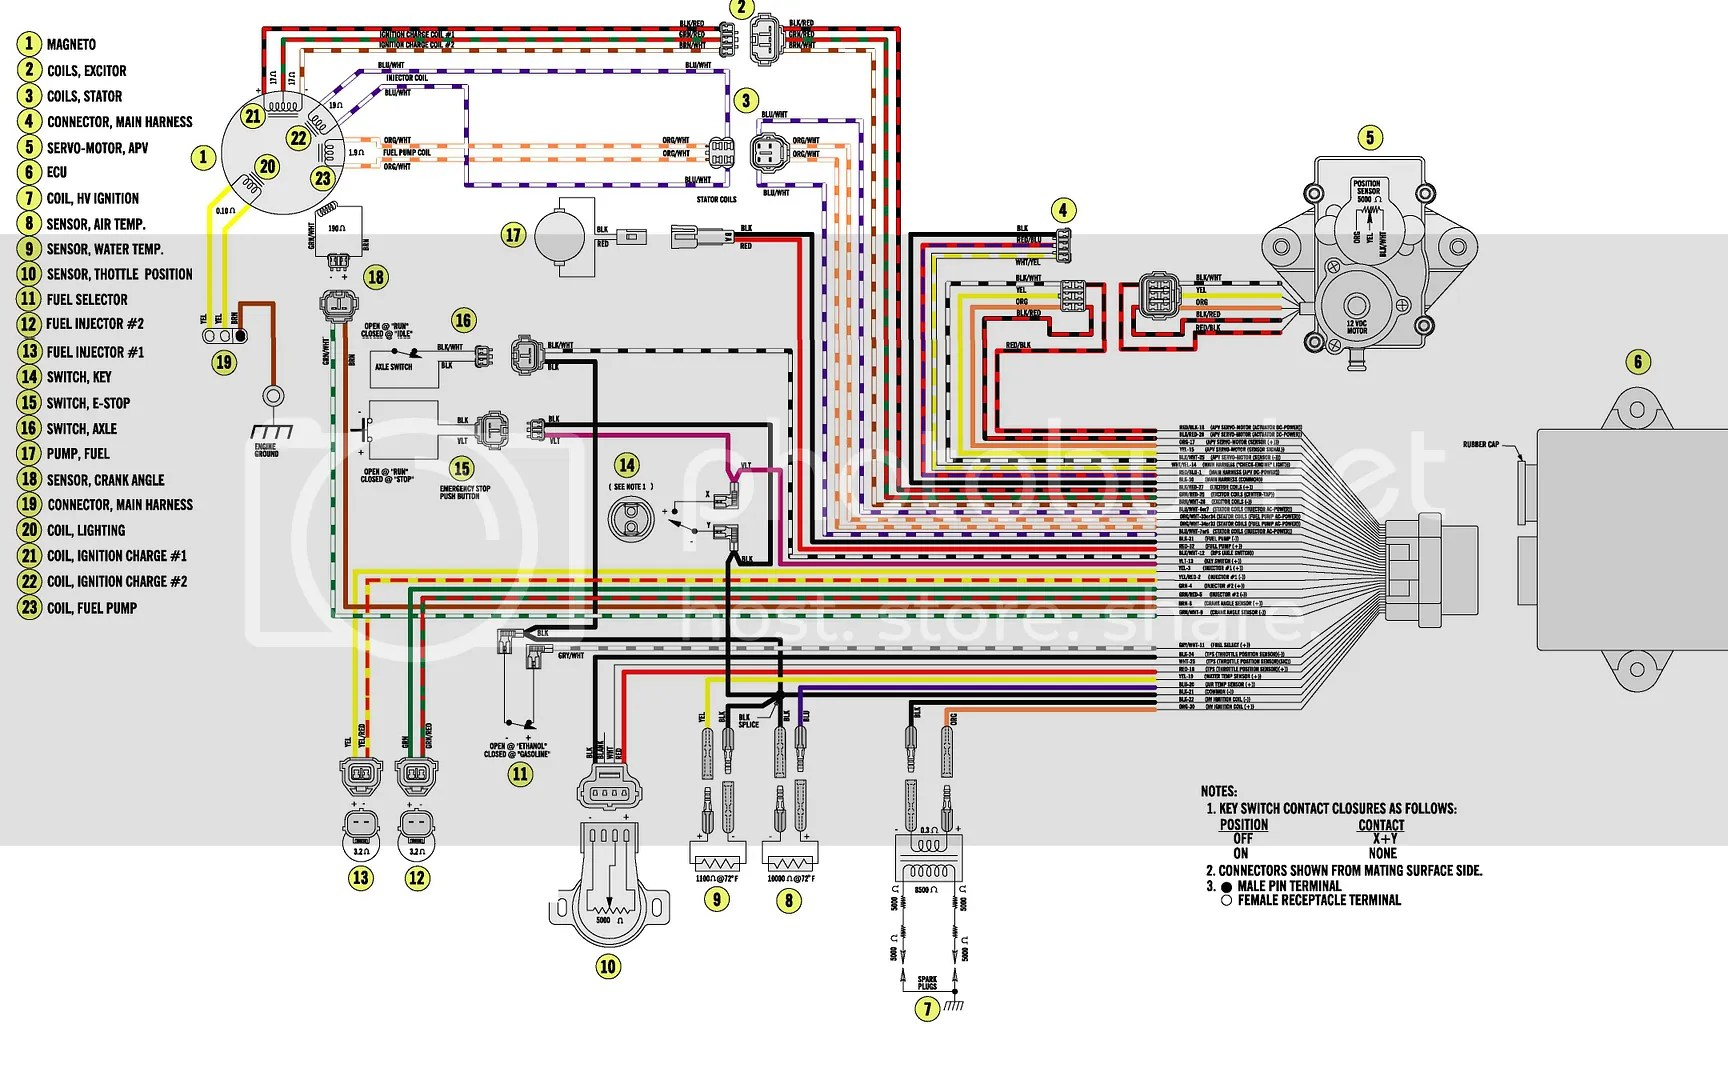 hight resolution of arctic cat 4x4 wiring diagram my wiring diagram arctic cat atv 400 2008 wiring diagram